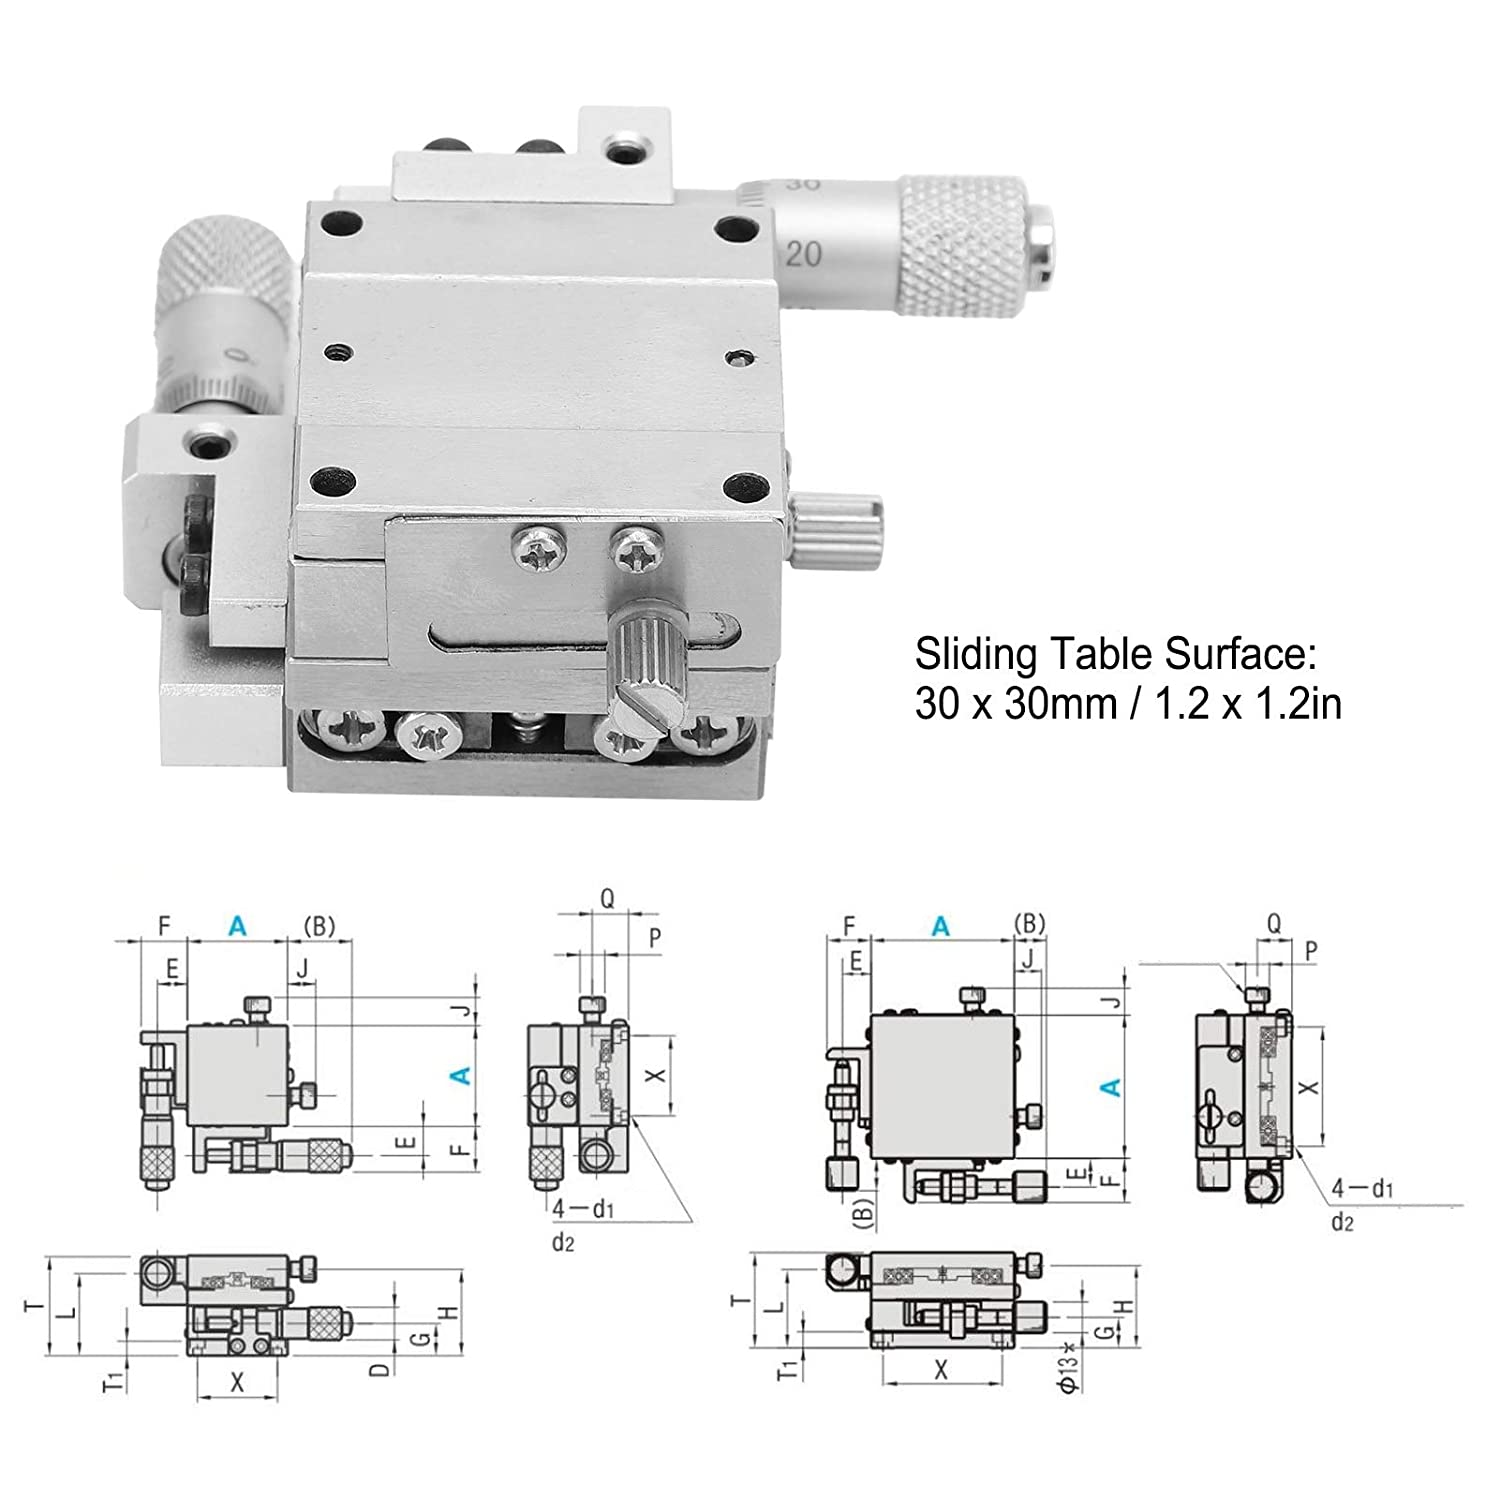 XY Axis Linear 30x30mm,Provide Linear Motion for Equipment